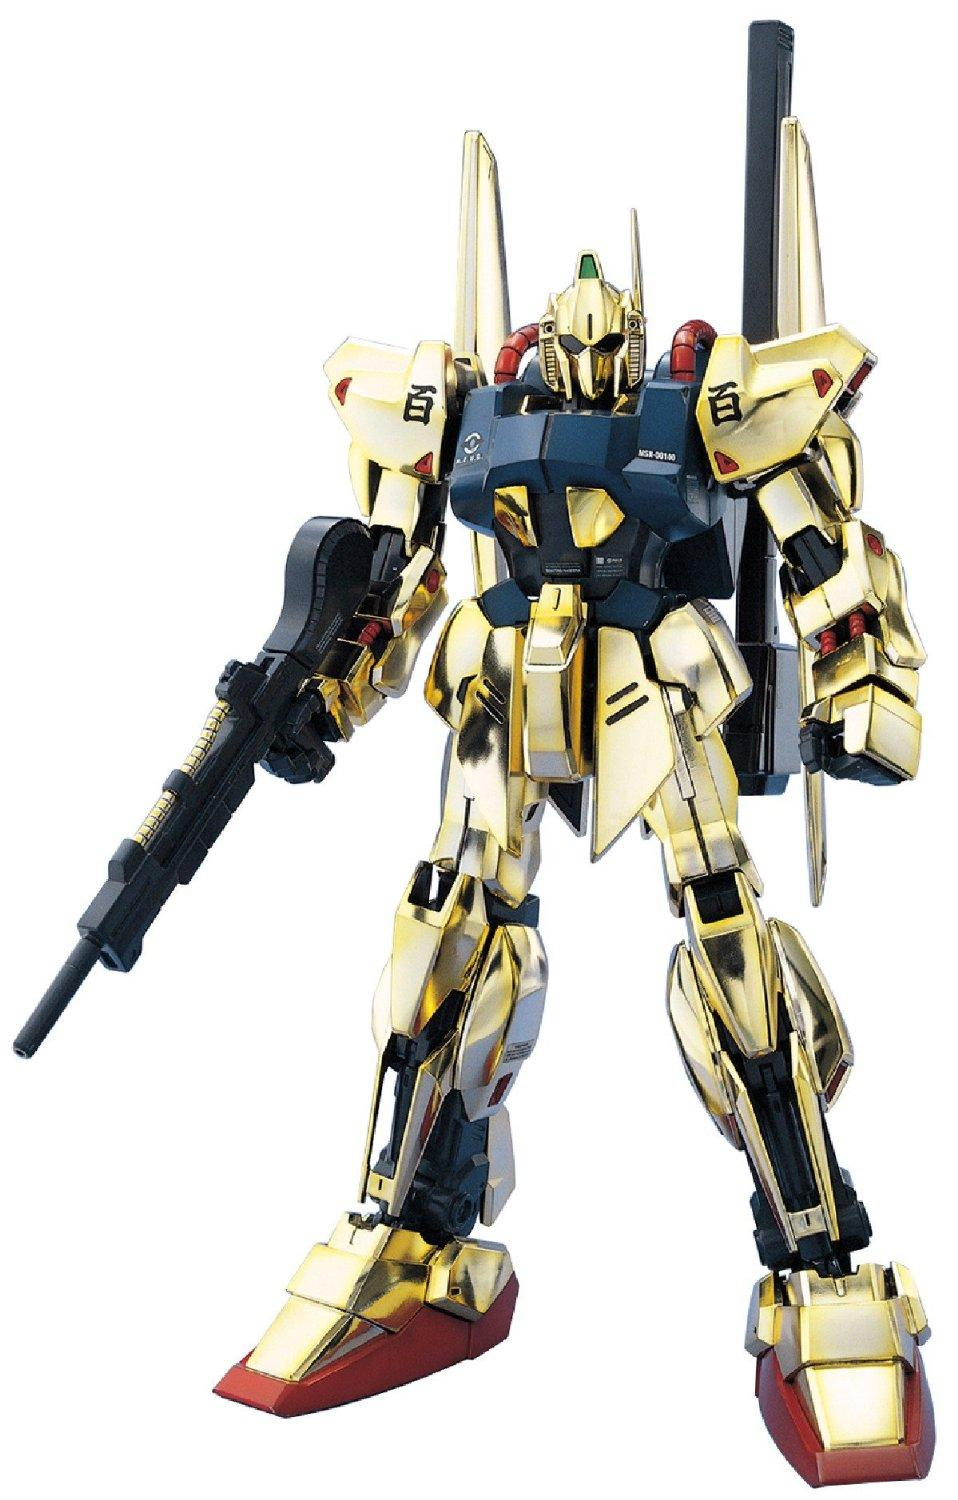 GUNDAM - Model Kit - MG 1/100 - MSN-100 Hyakushiki - 18CM